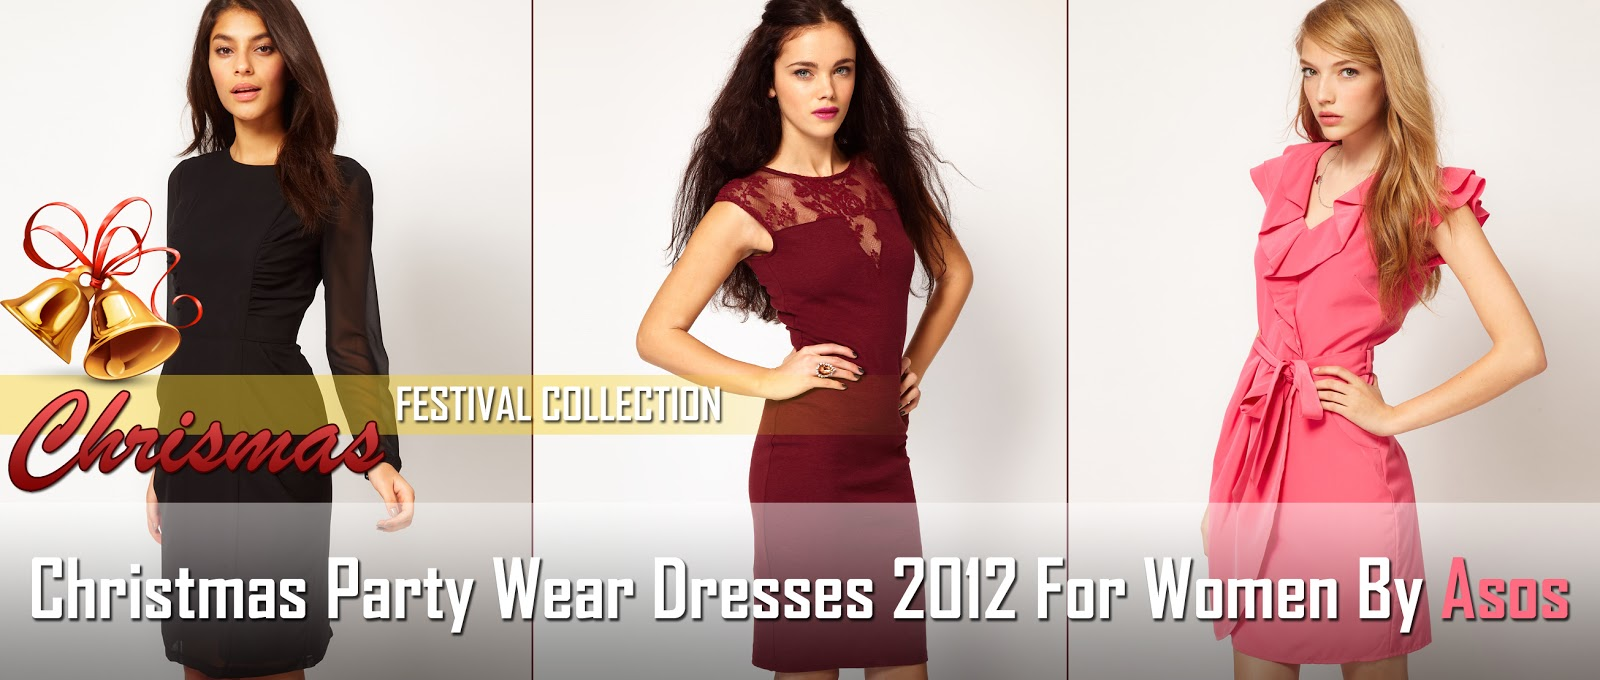 christmas party wear dresses 2012 women outfits for christmas party christmas festival dresses - Christmas Party Attire